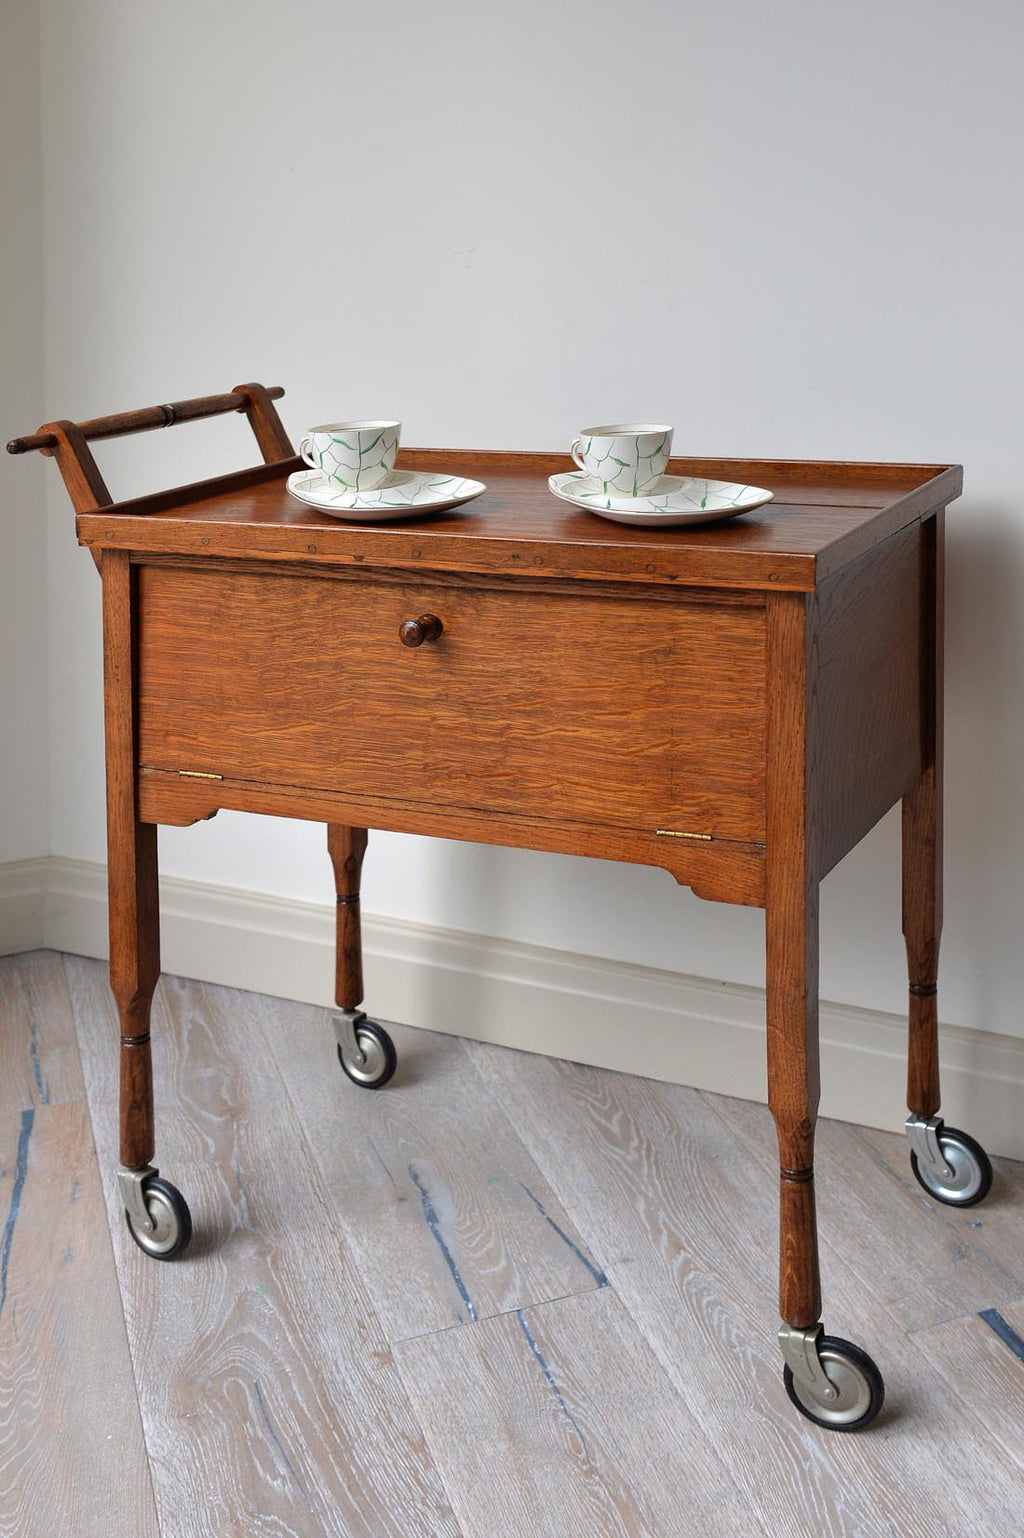 L'Atelier vintage trolley featured on Houzz and How oak fits well with the Japanese aesthetic